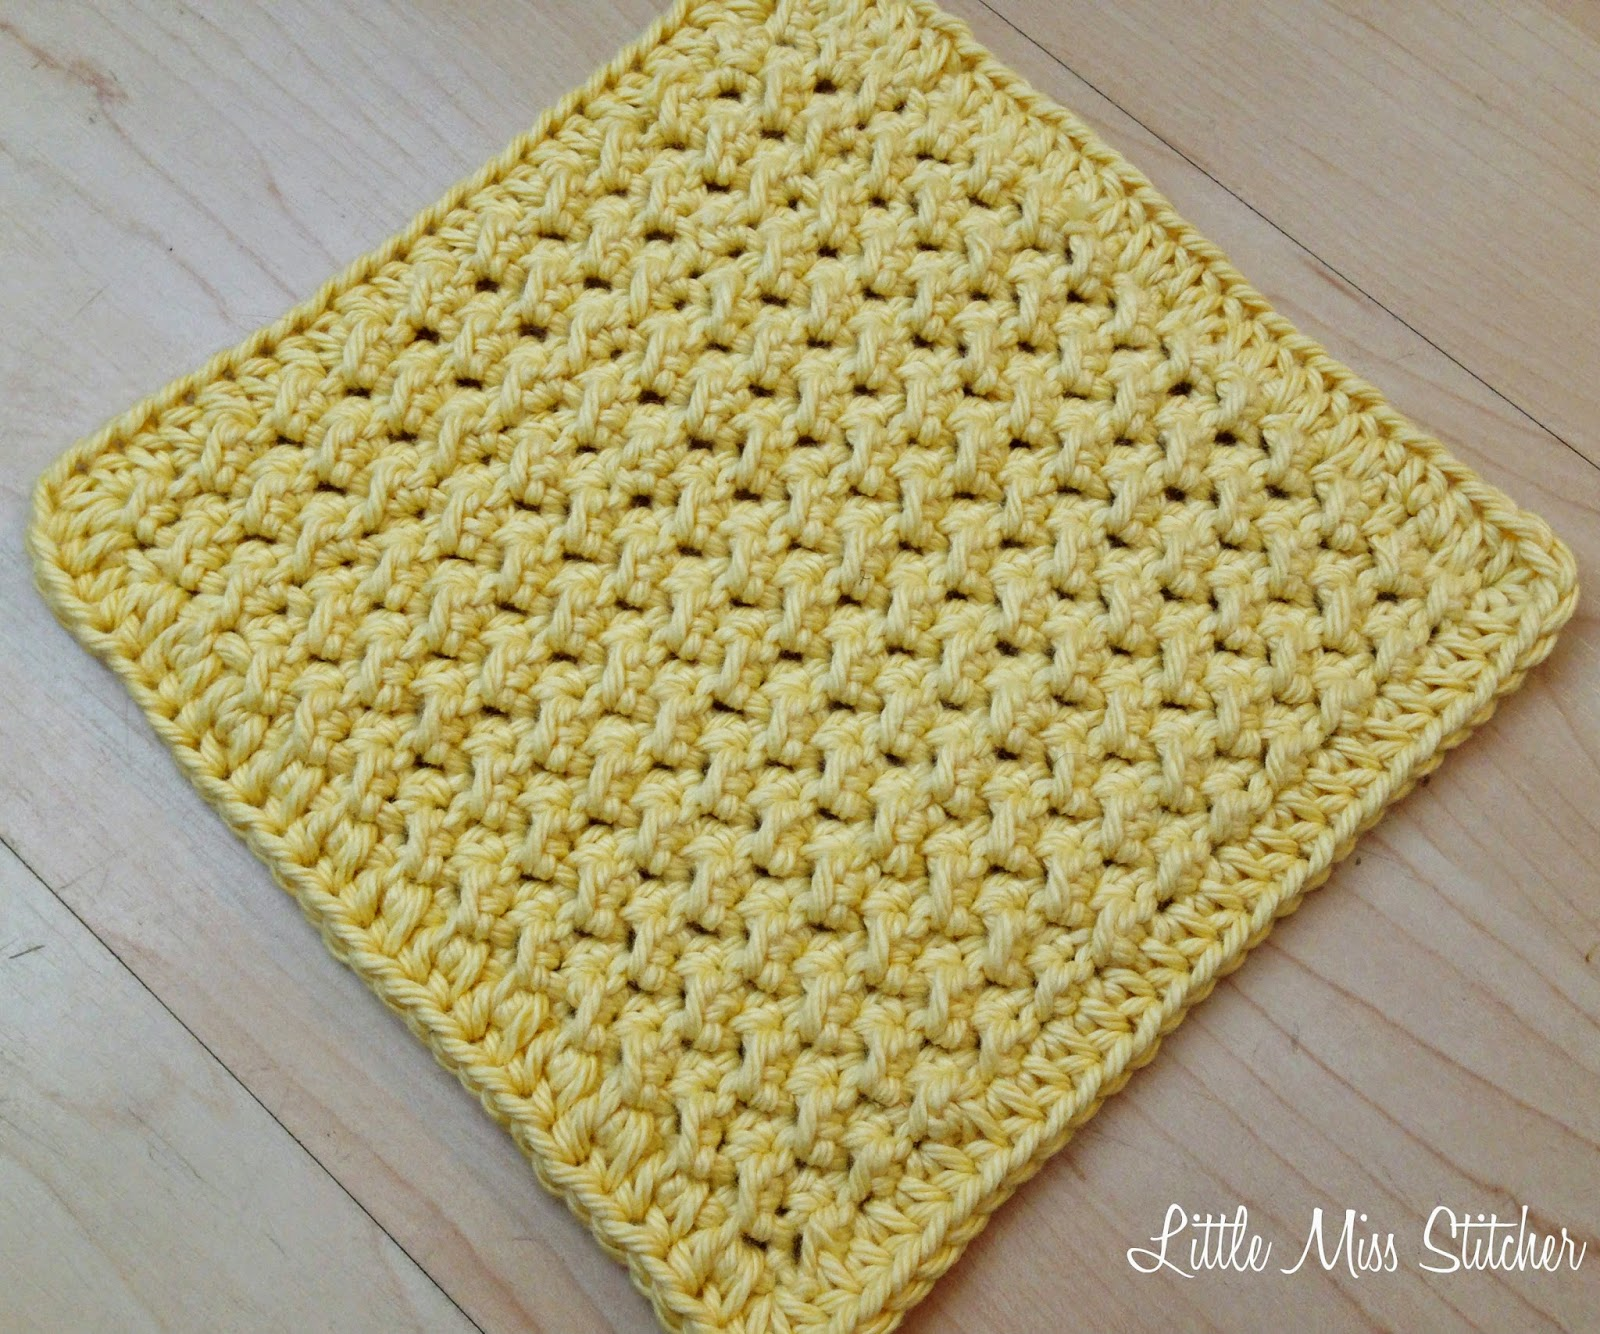 Dishcloth Knit Patterns Free : Little Miss Stitcher: 5 Free Crochet Dishcloth Patterns